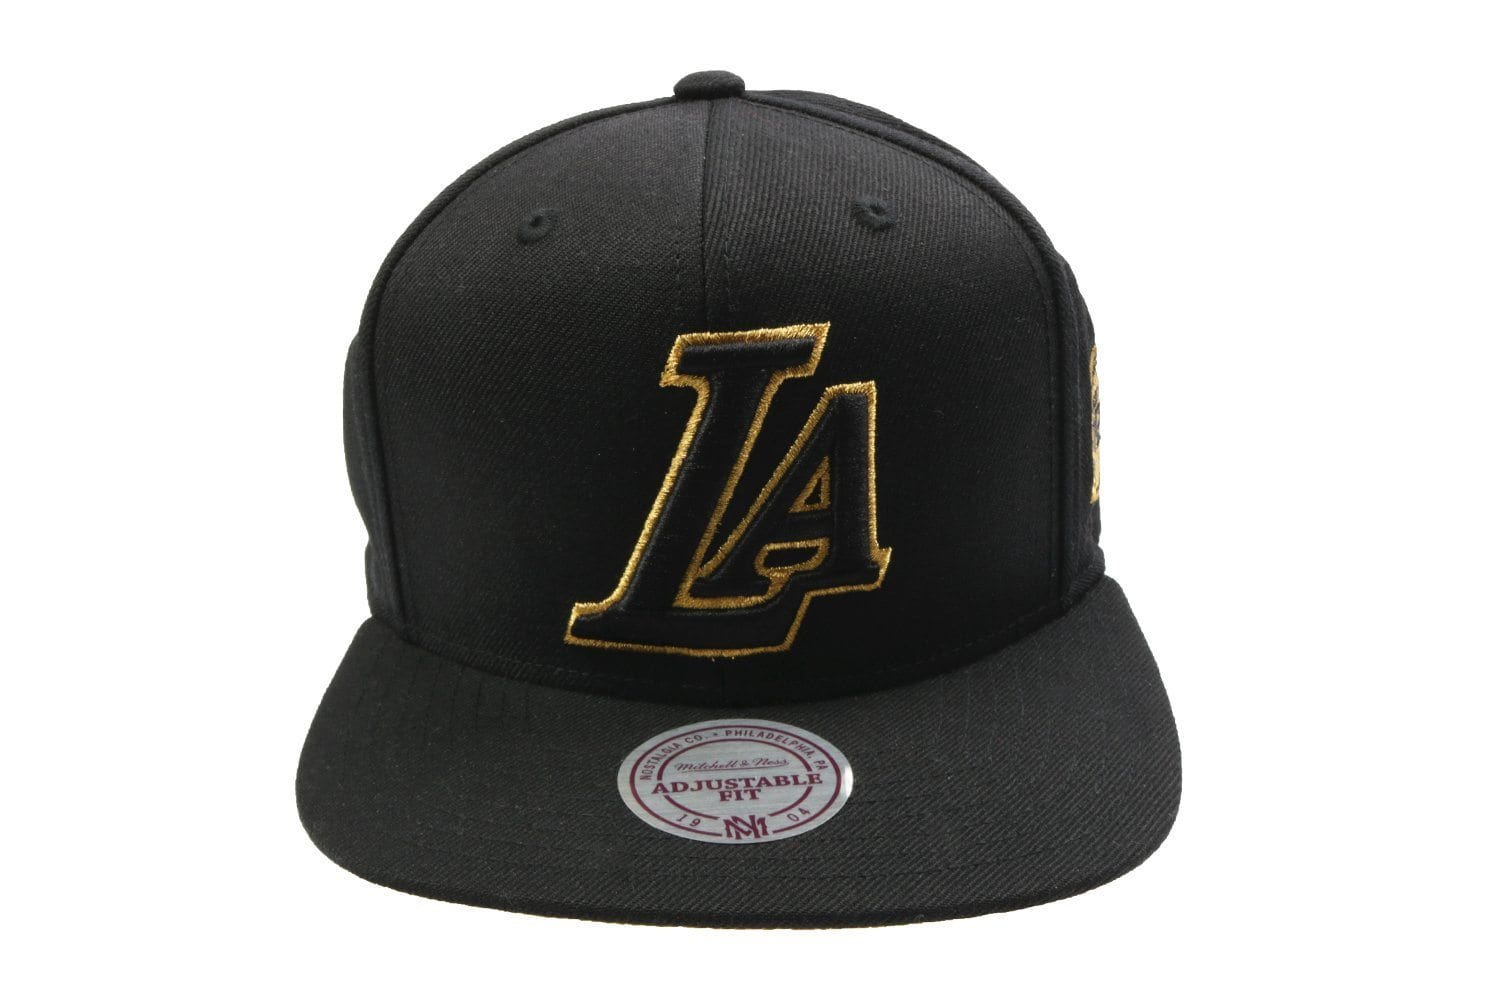 NBA LA GOLD SNB HATS MITCHELL & NESS